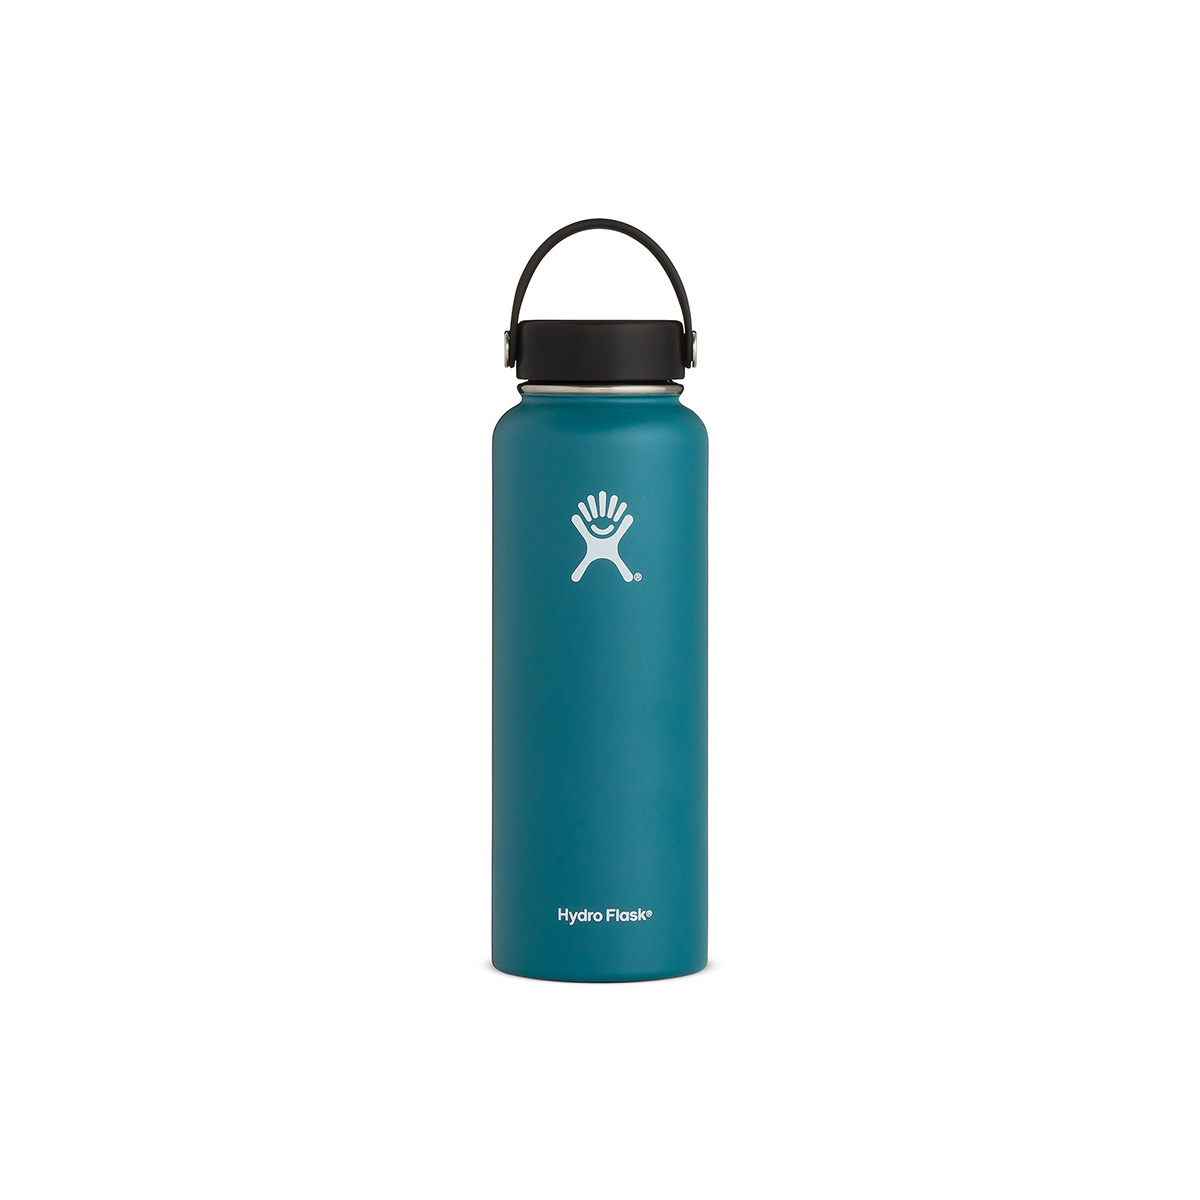 Hydro Flask Hydro Flask 40 oz Wide Mouth